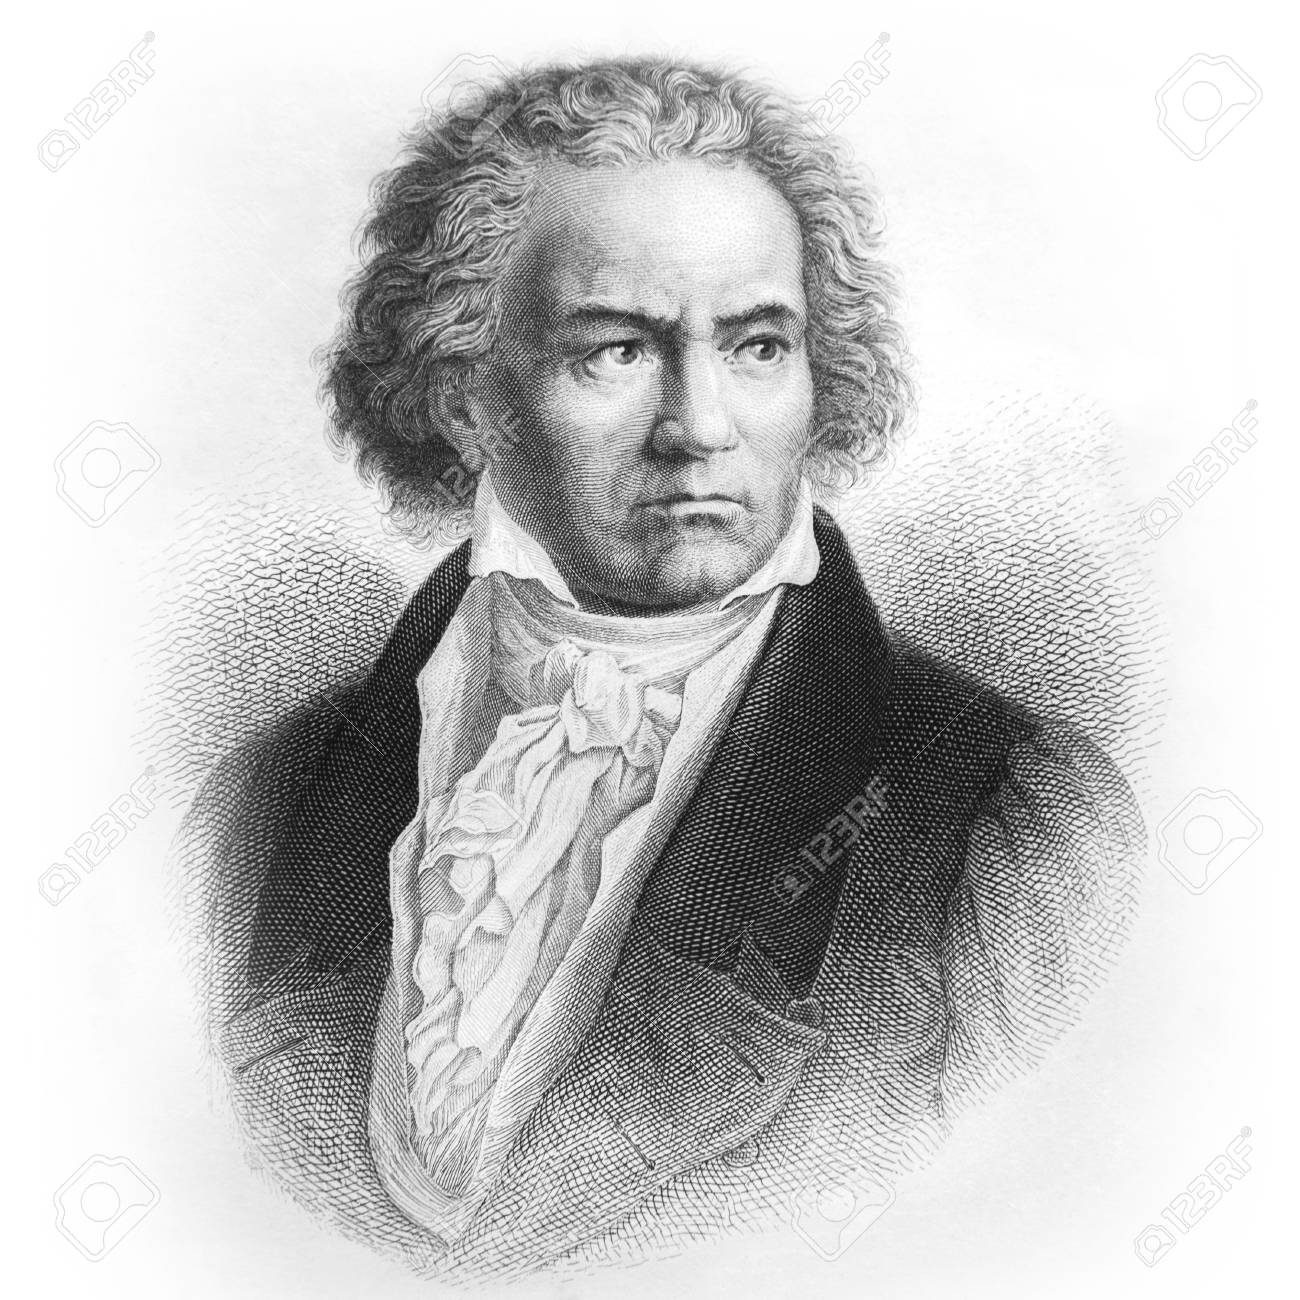 """Ludwig van Beethoven, German composer and pianist. Picture from Ch. Oeser's antique book """"Aesthetische Briefe"""" (Esthetic Letters). Published by Friedrich Brandstetter, Leipzig (1874) - 123569309"""